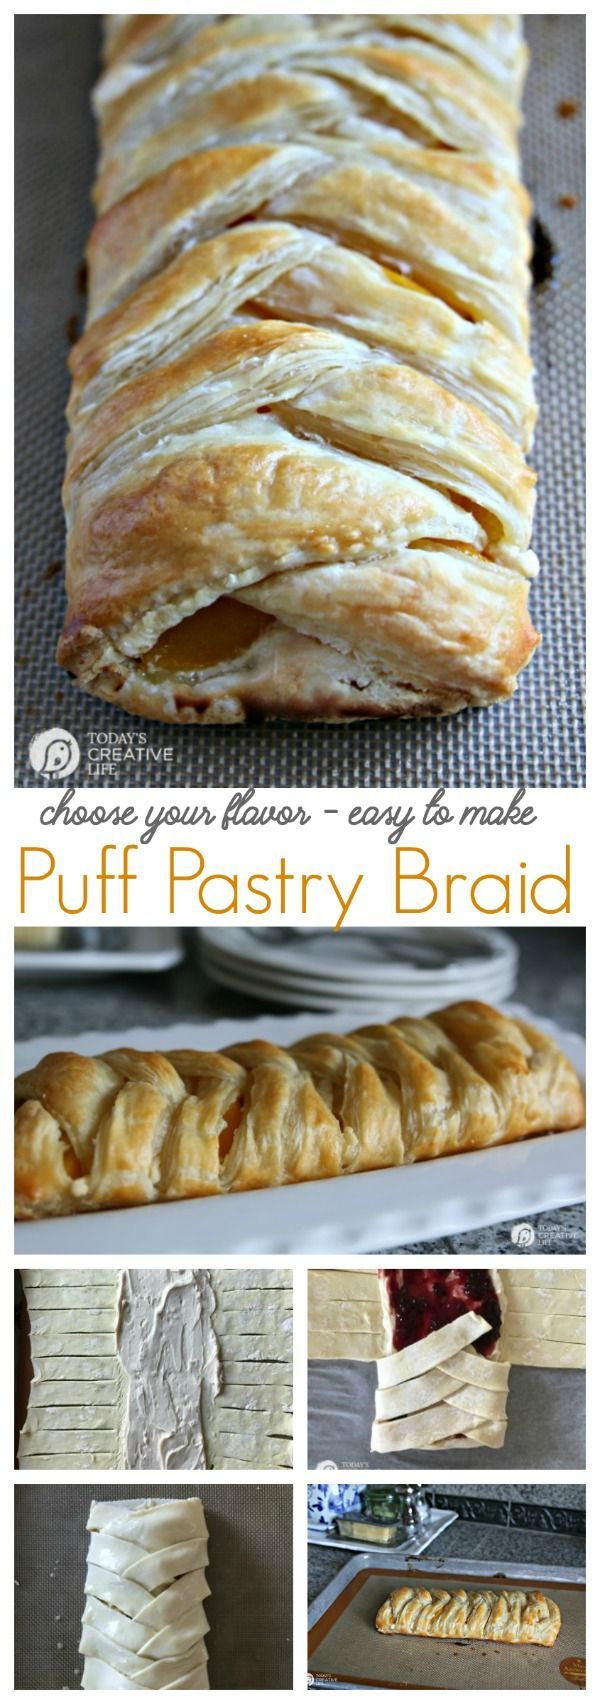 Puff Pastry Braid | This easy puff pastry braid danish can be made in any flavor. Perfect for Easter brunch, or breakfast. Step by Step instructions. Click on the photo for the recipe. TodaysCreativeLife.com